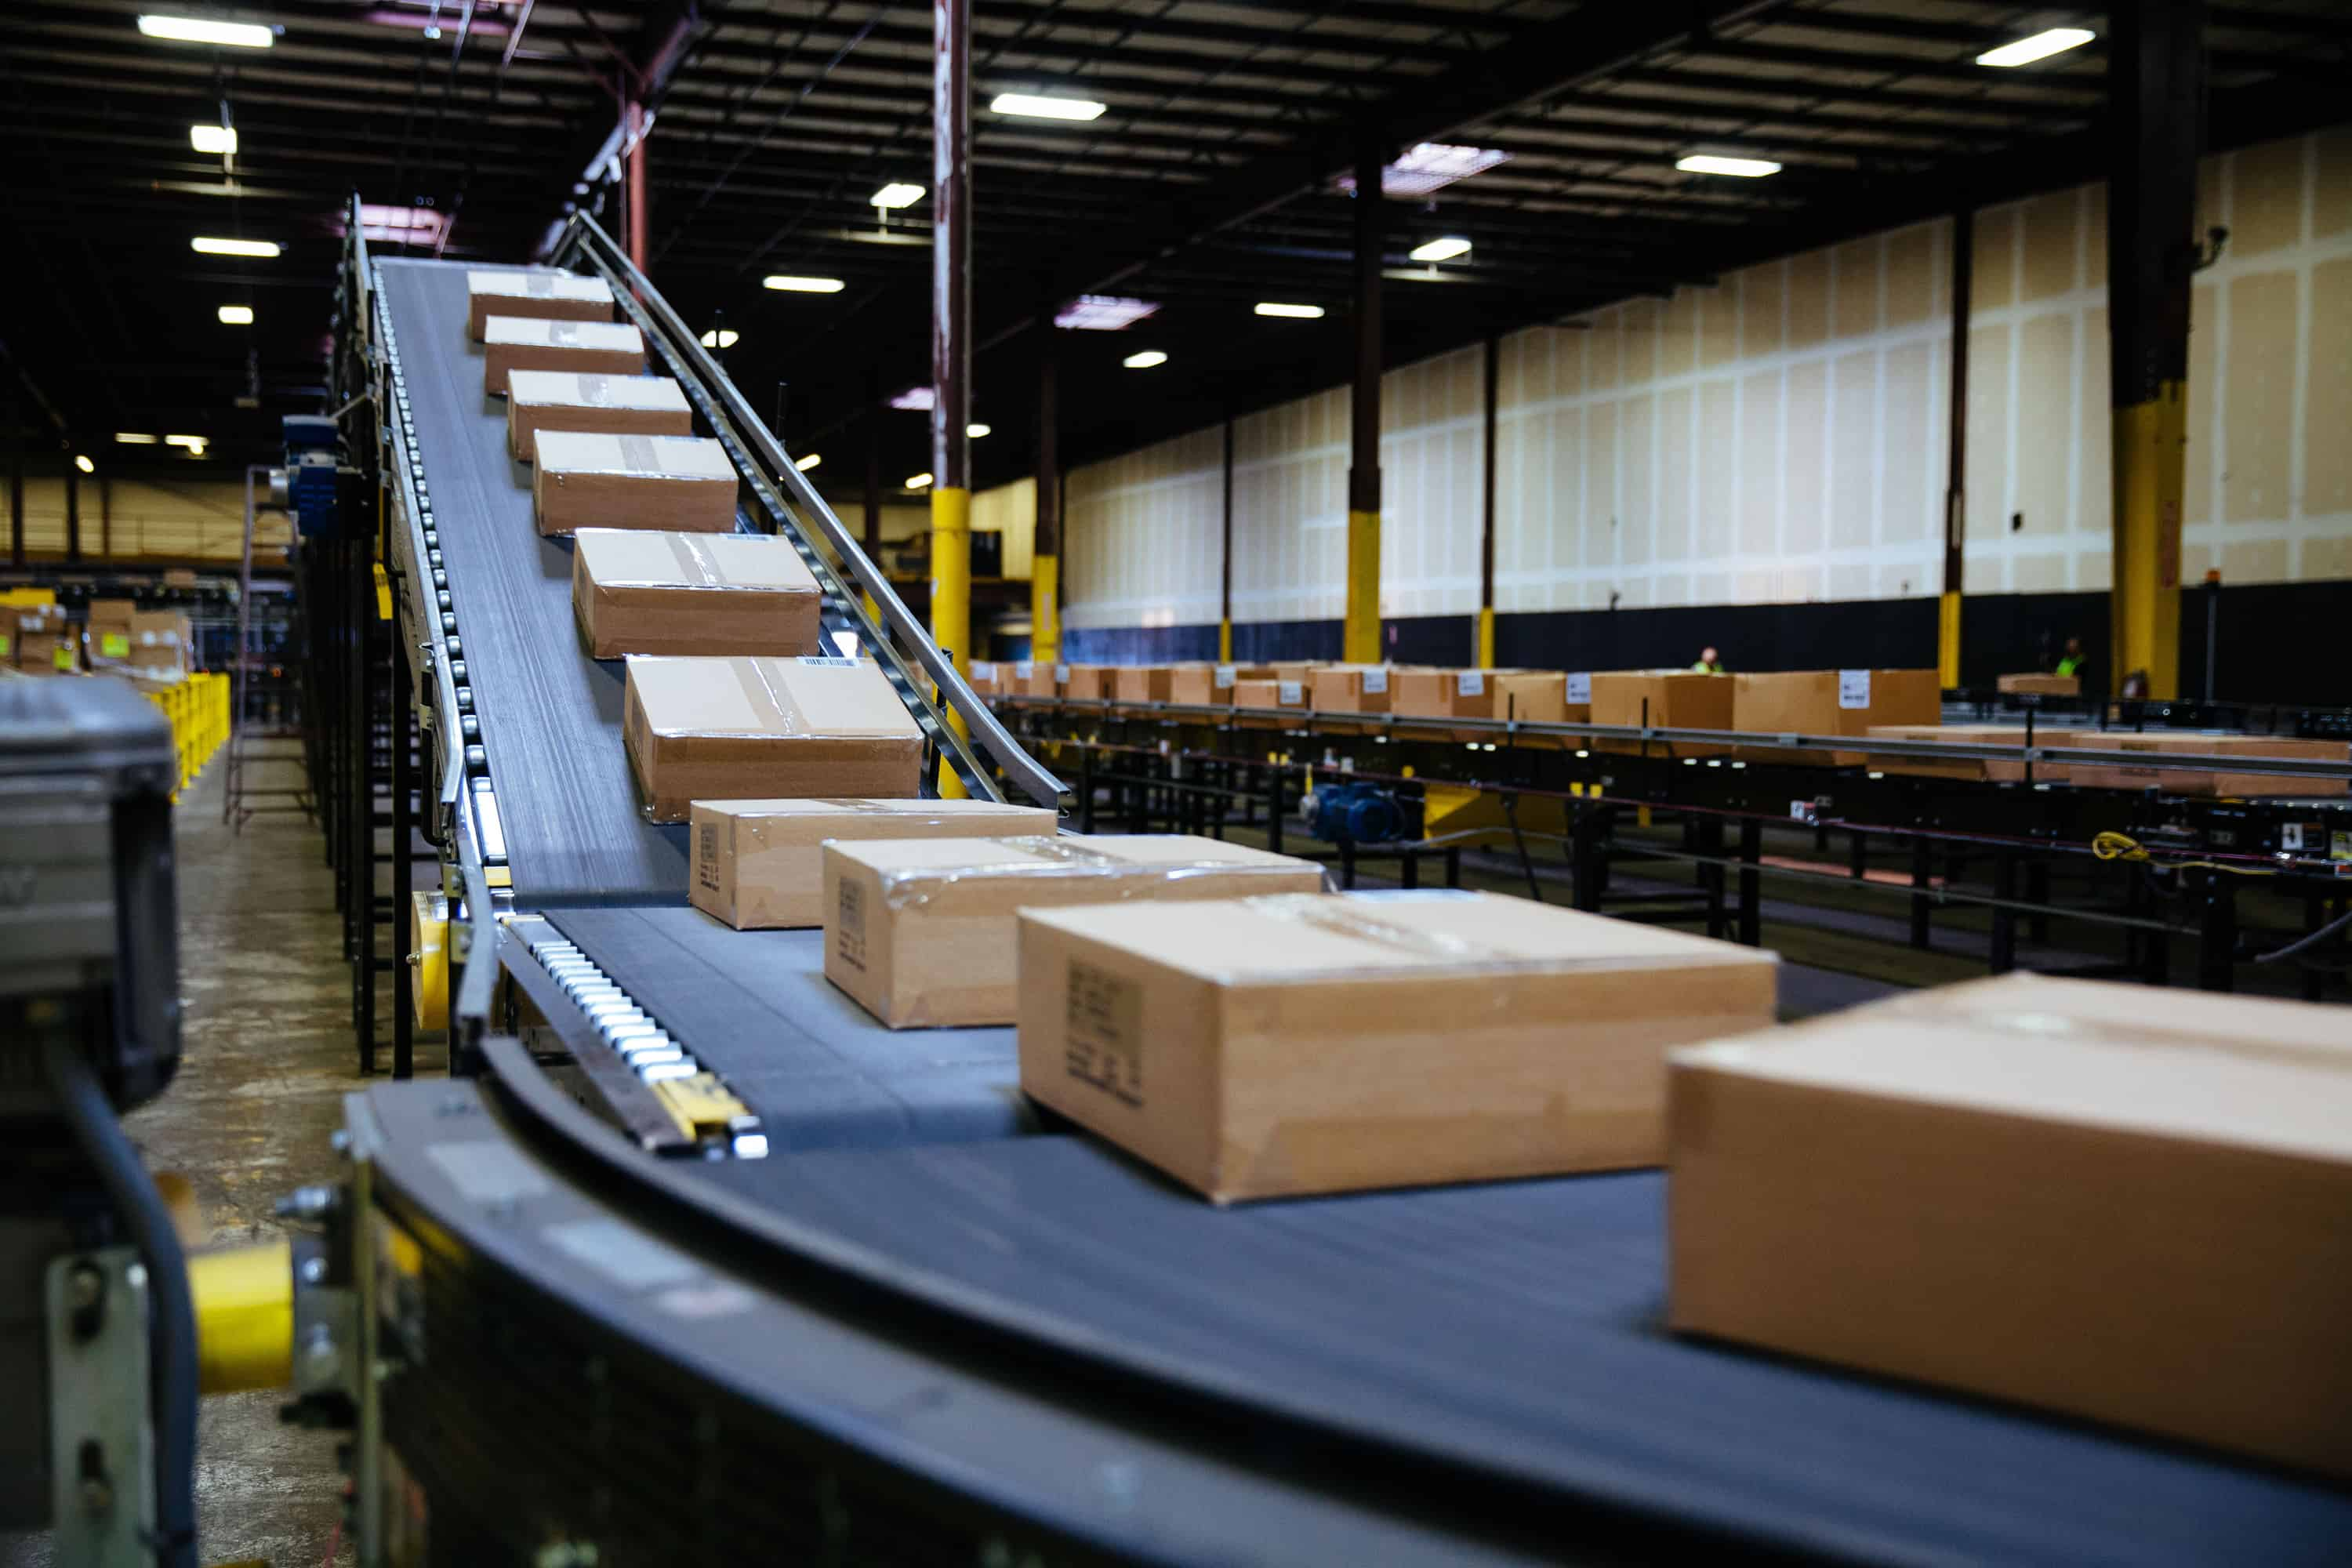 Boxes going down conveyor belt